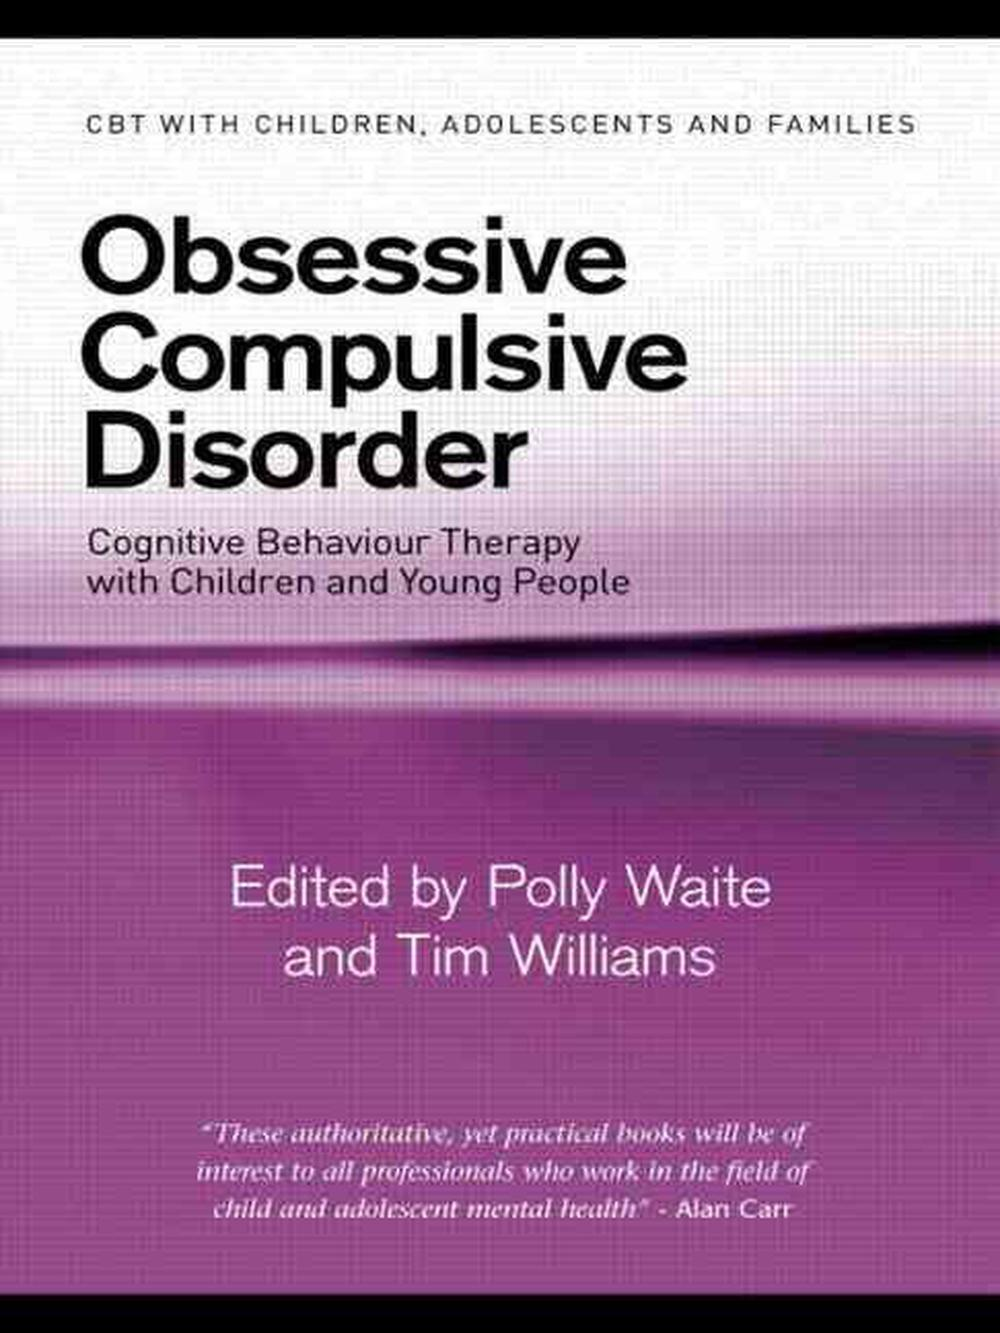 Obsessive Compulsive Disorder: Cognitive Behaviour Therapy with Children and Young People